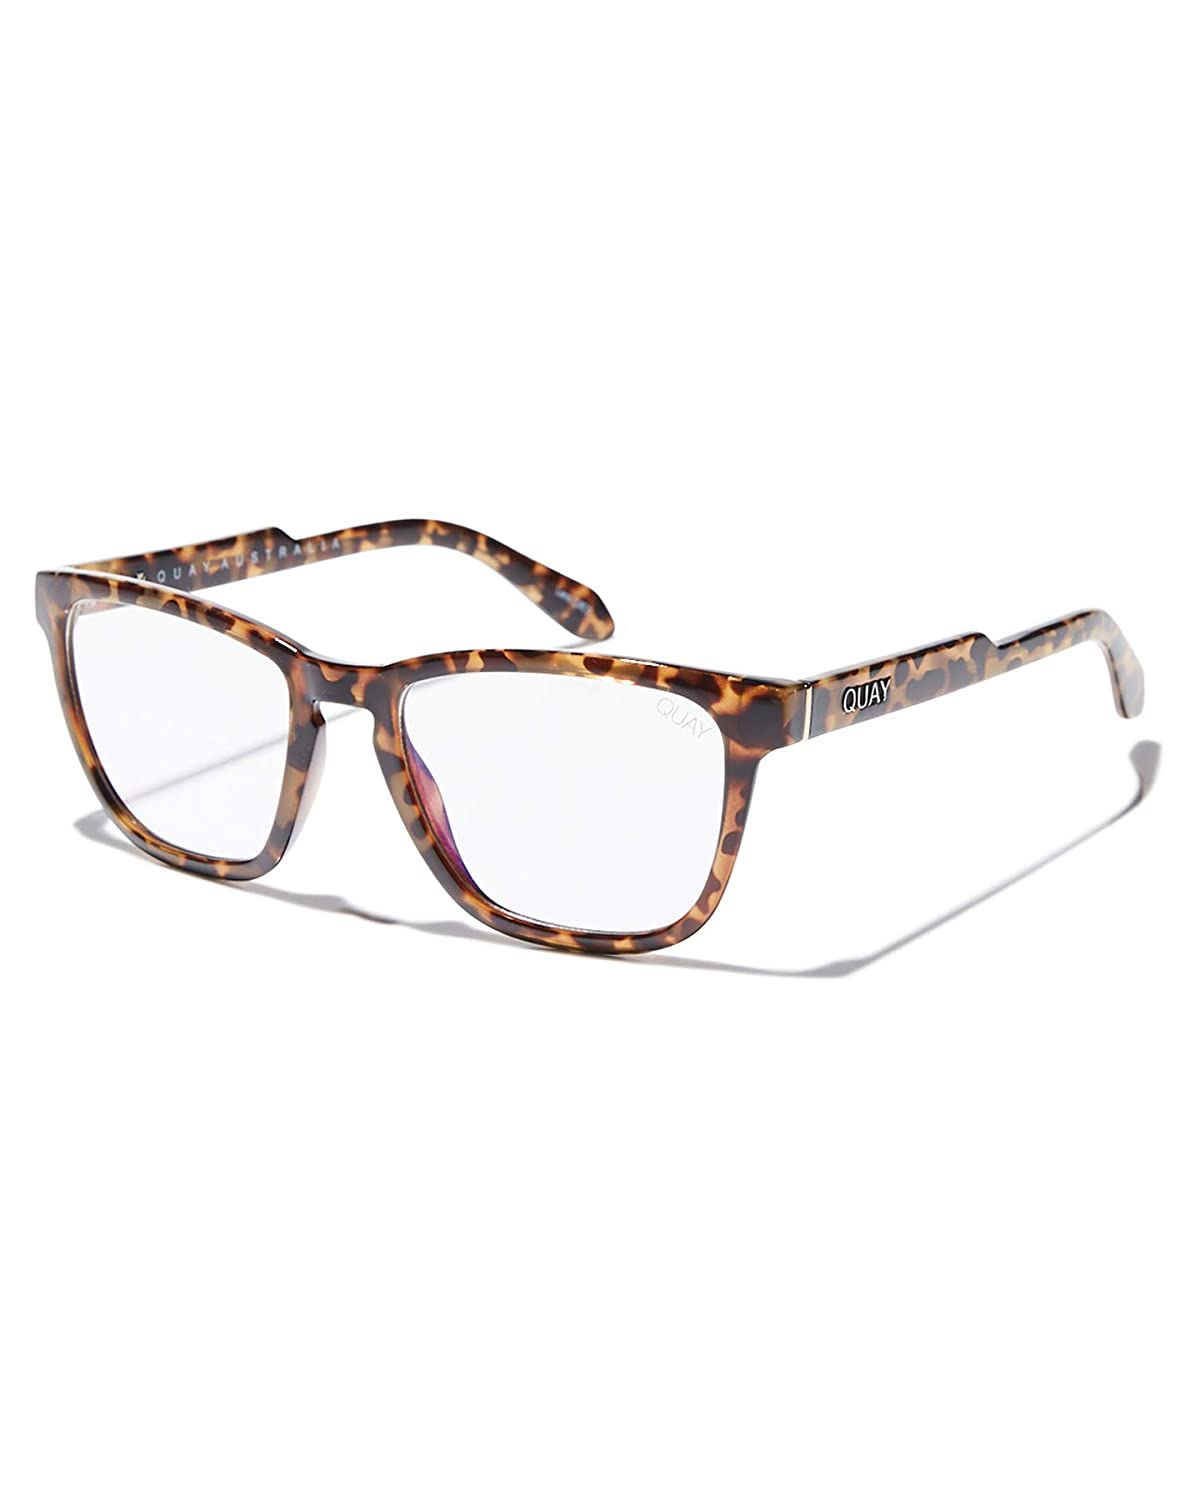 5fc78f40f9 Amazon.com  Quay Australia Women s Hardwire Blue Light Glasses (Black Clear  Blue Light Lens